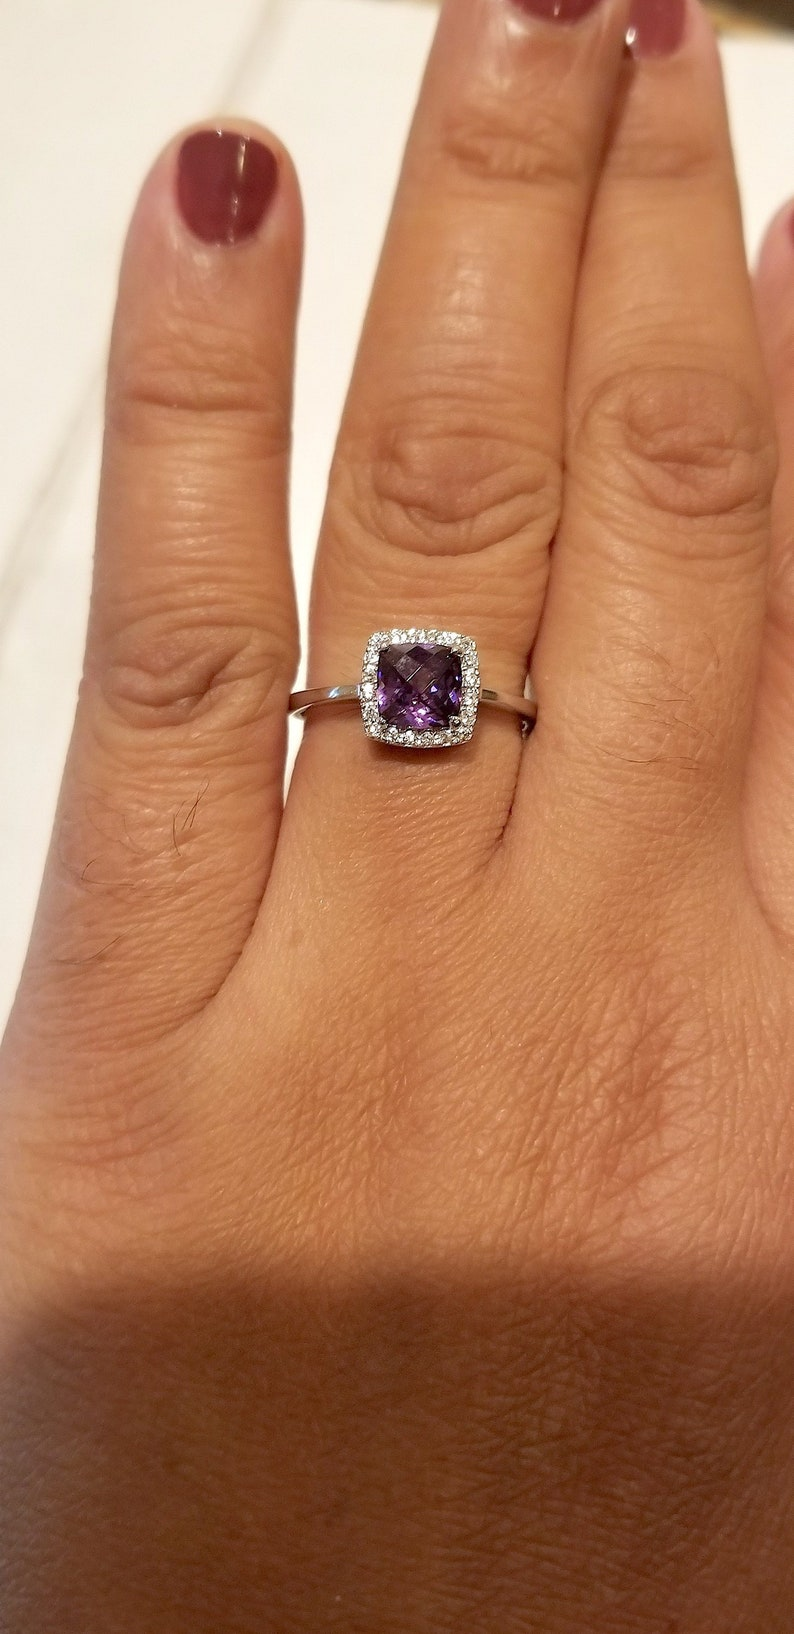 Sterling Silver Square Amethyst Gemstone Adjustable Toe Ring On Plain Band